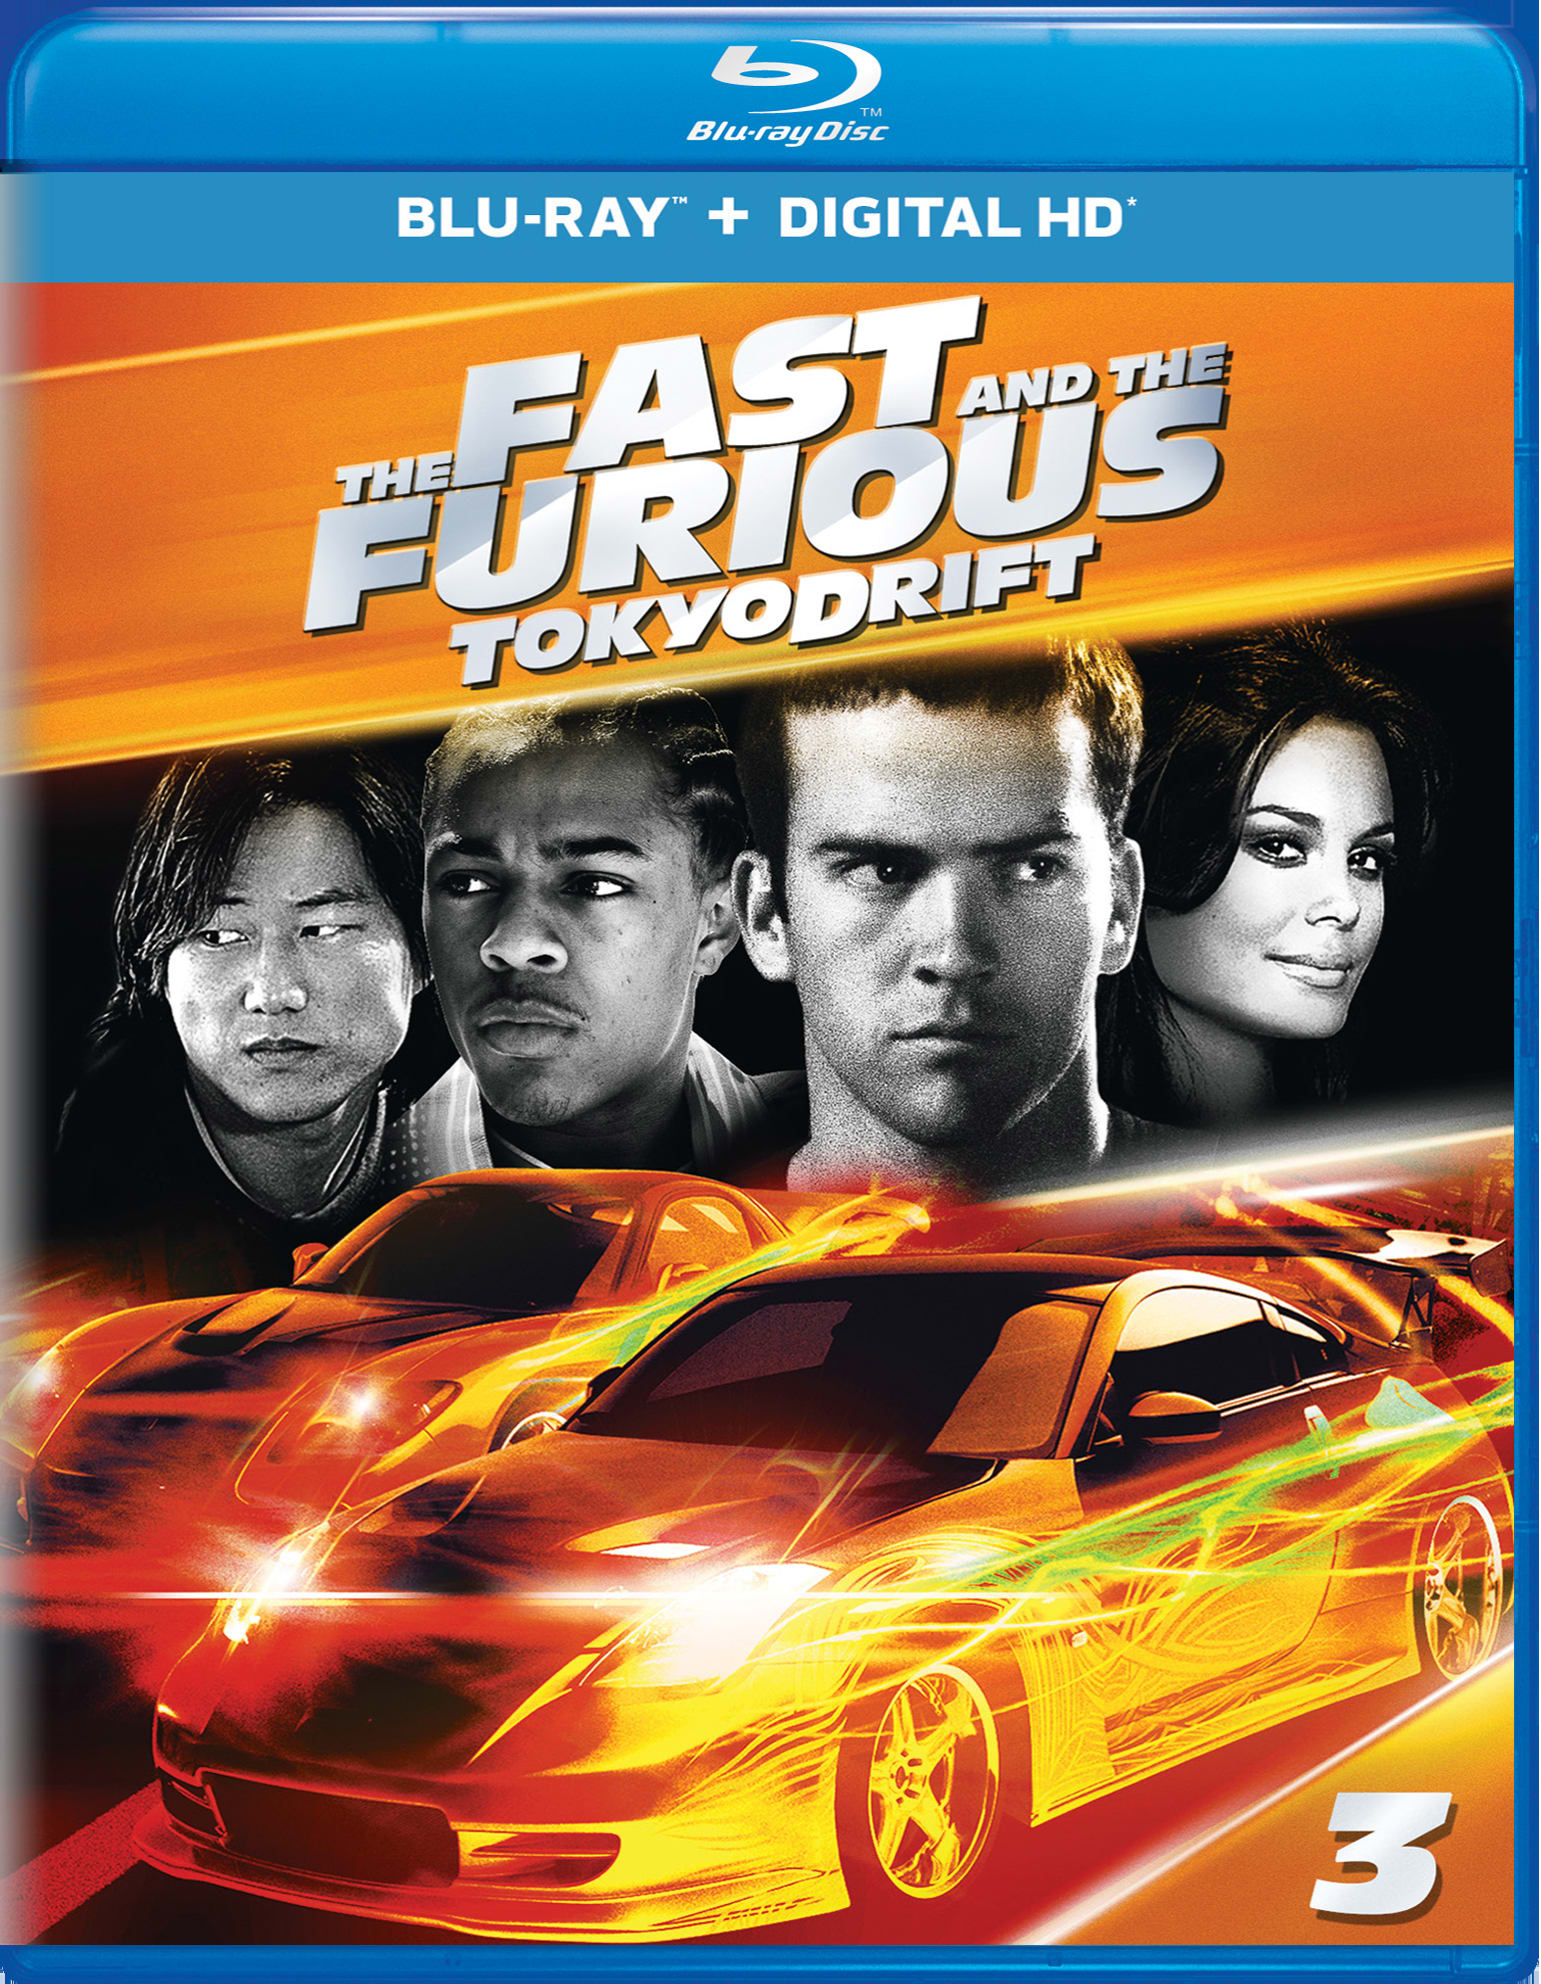 The Fast and the Furious: Tokyo Drift (Digital) [Blu-ray]